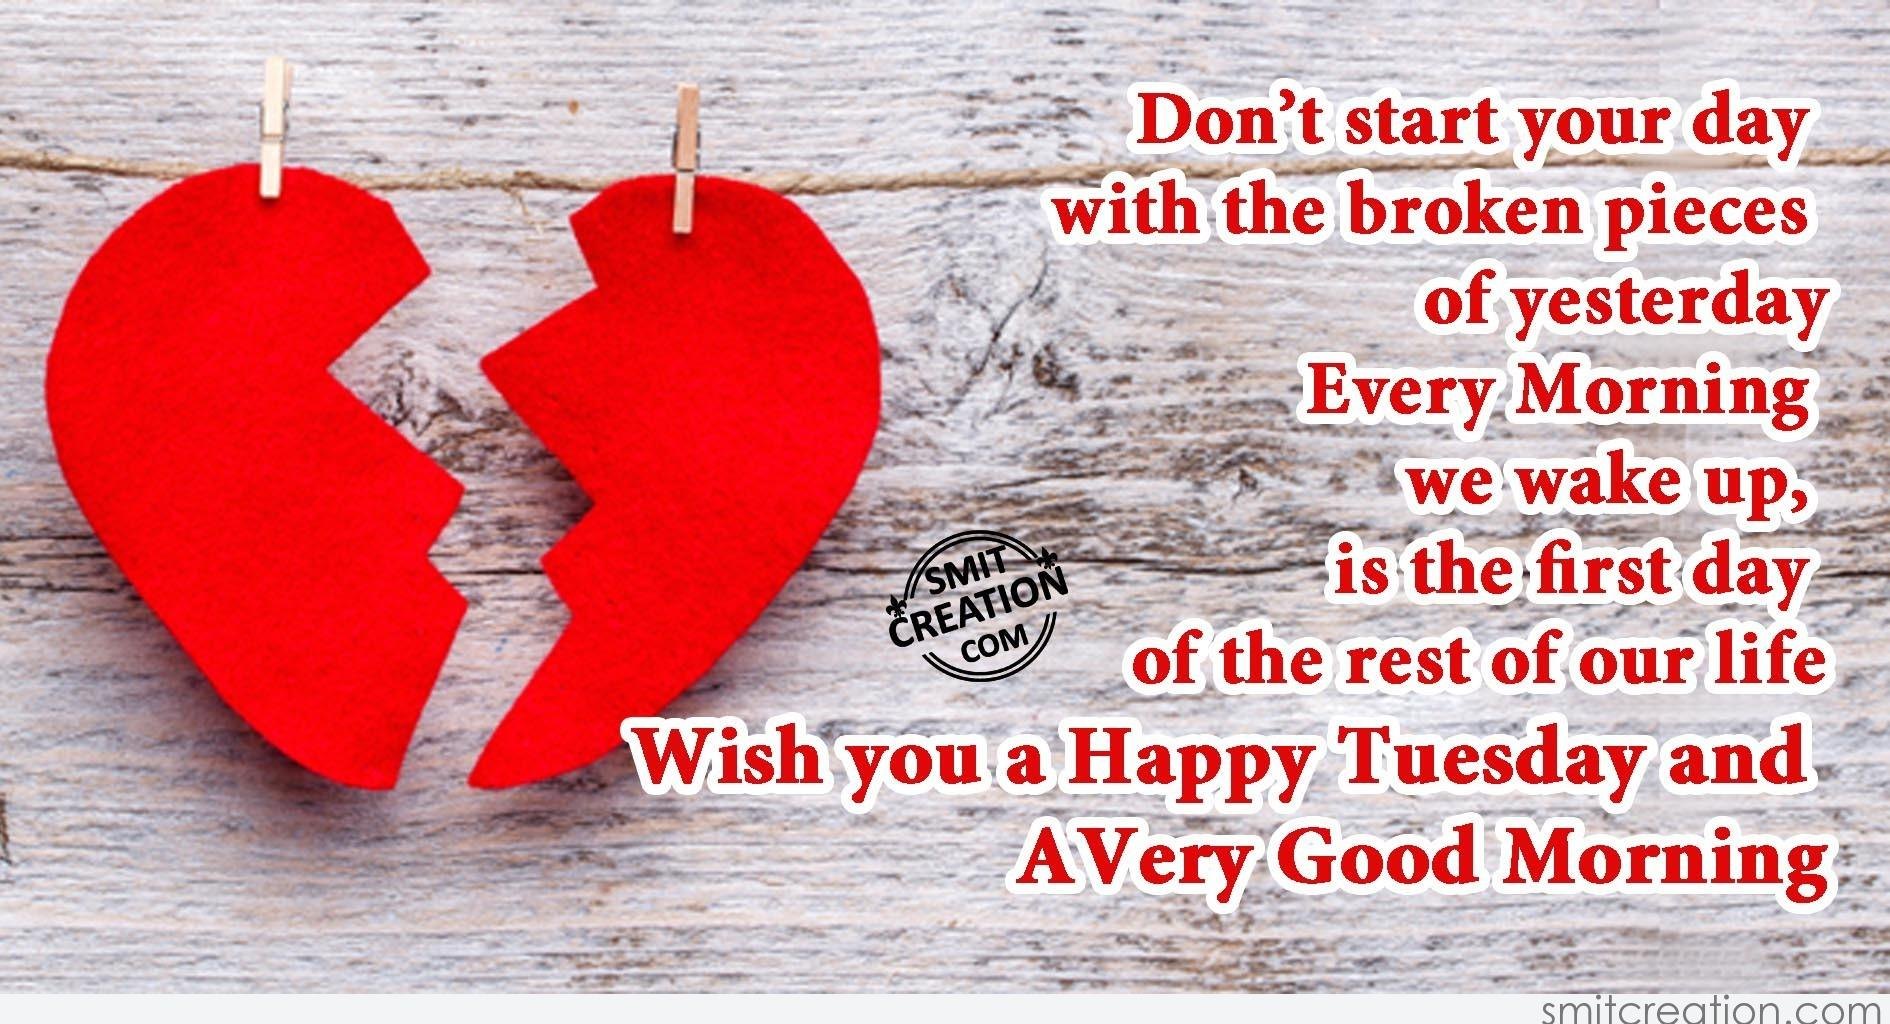 Donu0027t Start Your Day With The Broken Pieces Of Yesterday. Every Morning We  Wake Up, Is The First Day Of The Rest Of Our Life. Wish You A Happy Tuesday  And ...